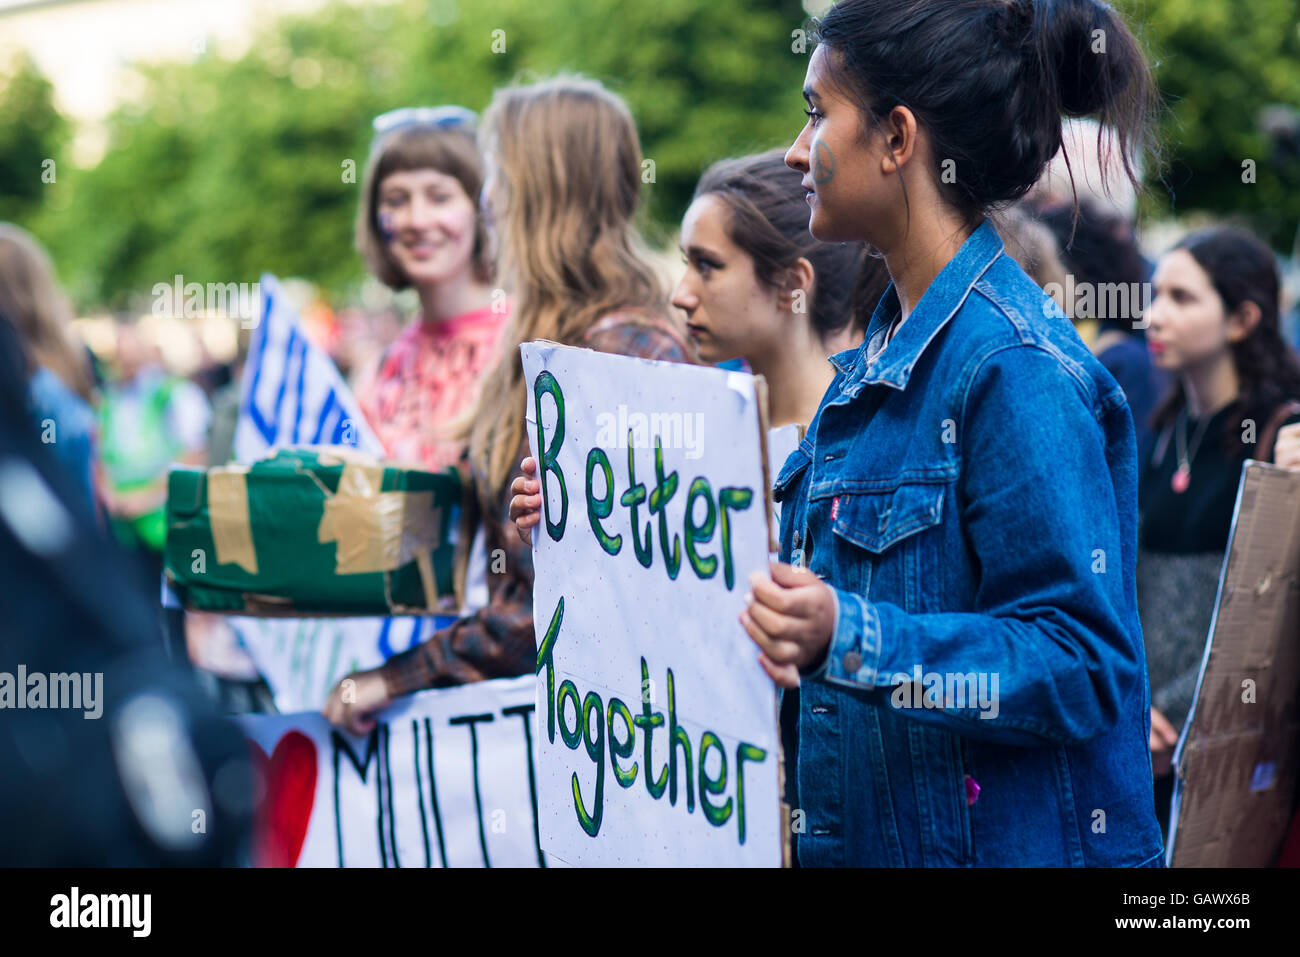 : Liverpool, UK, 5th June 2016. A group of people holding pro EU placards at the  'Stand together Liverpool' rally - Stock Image